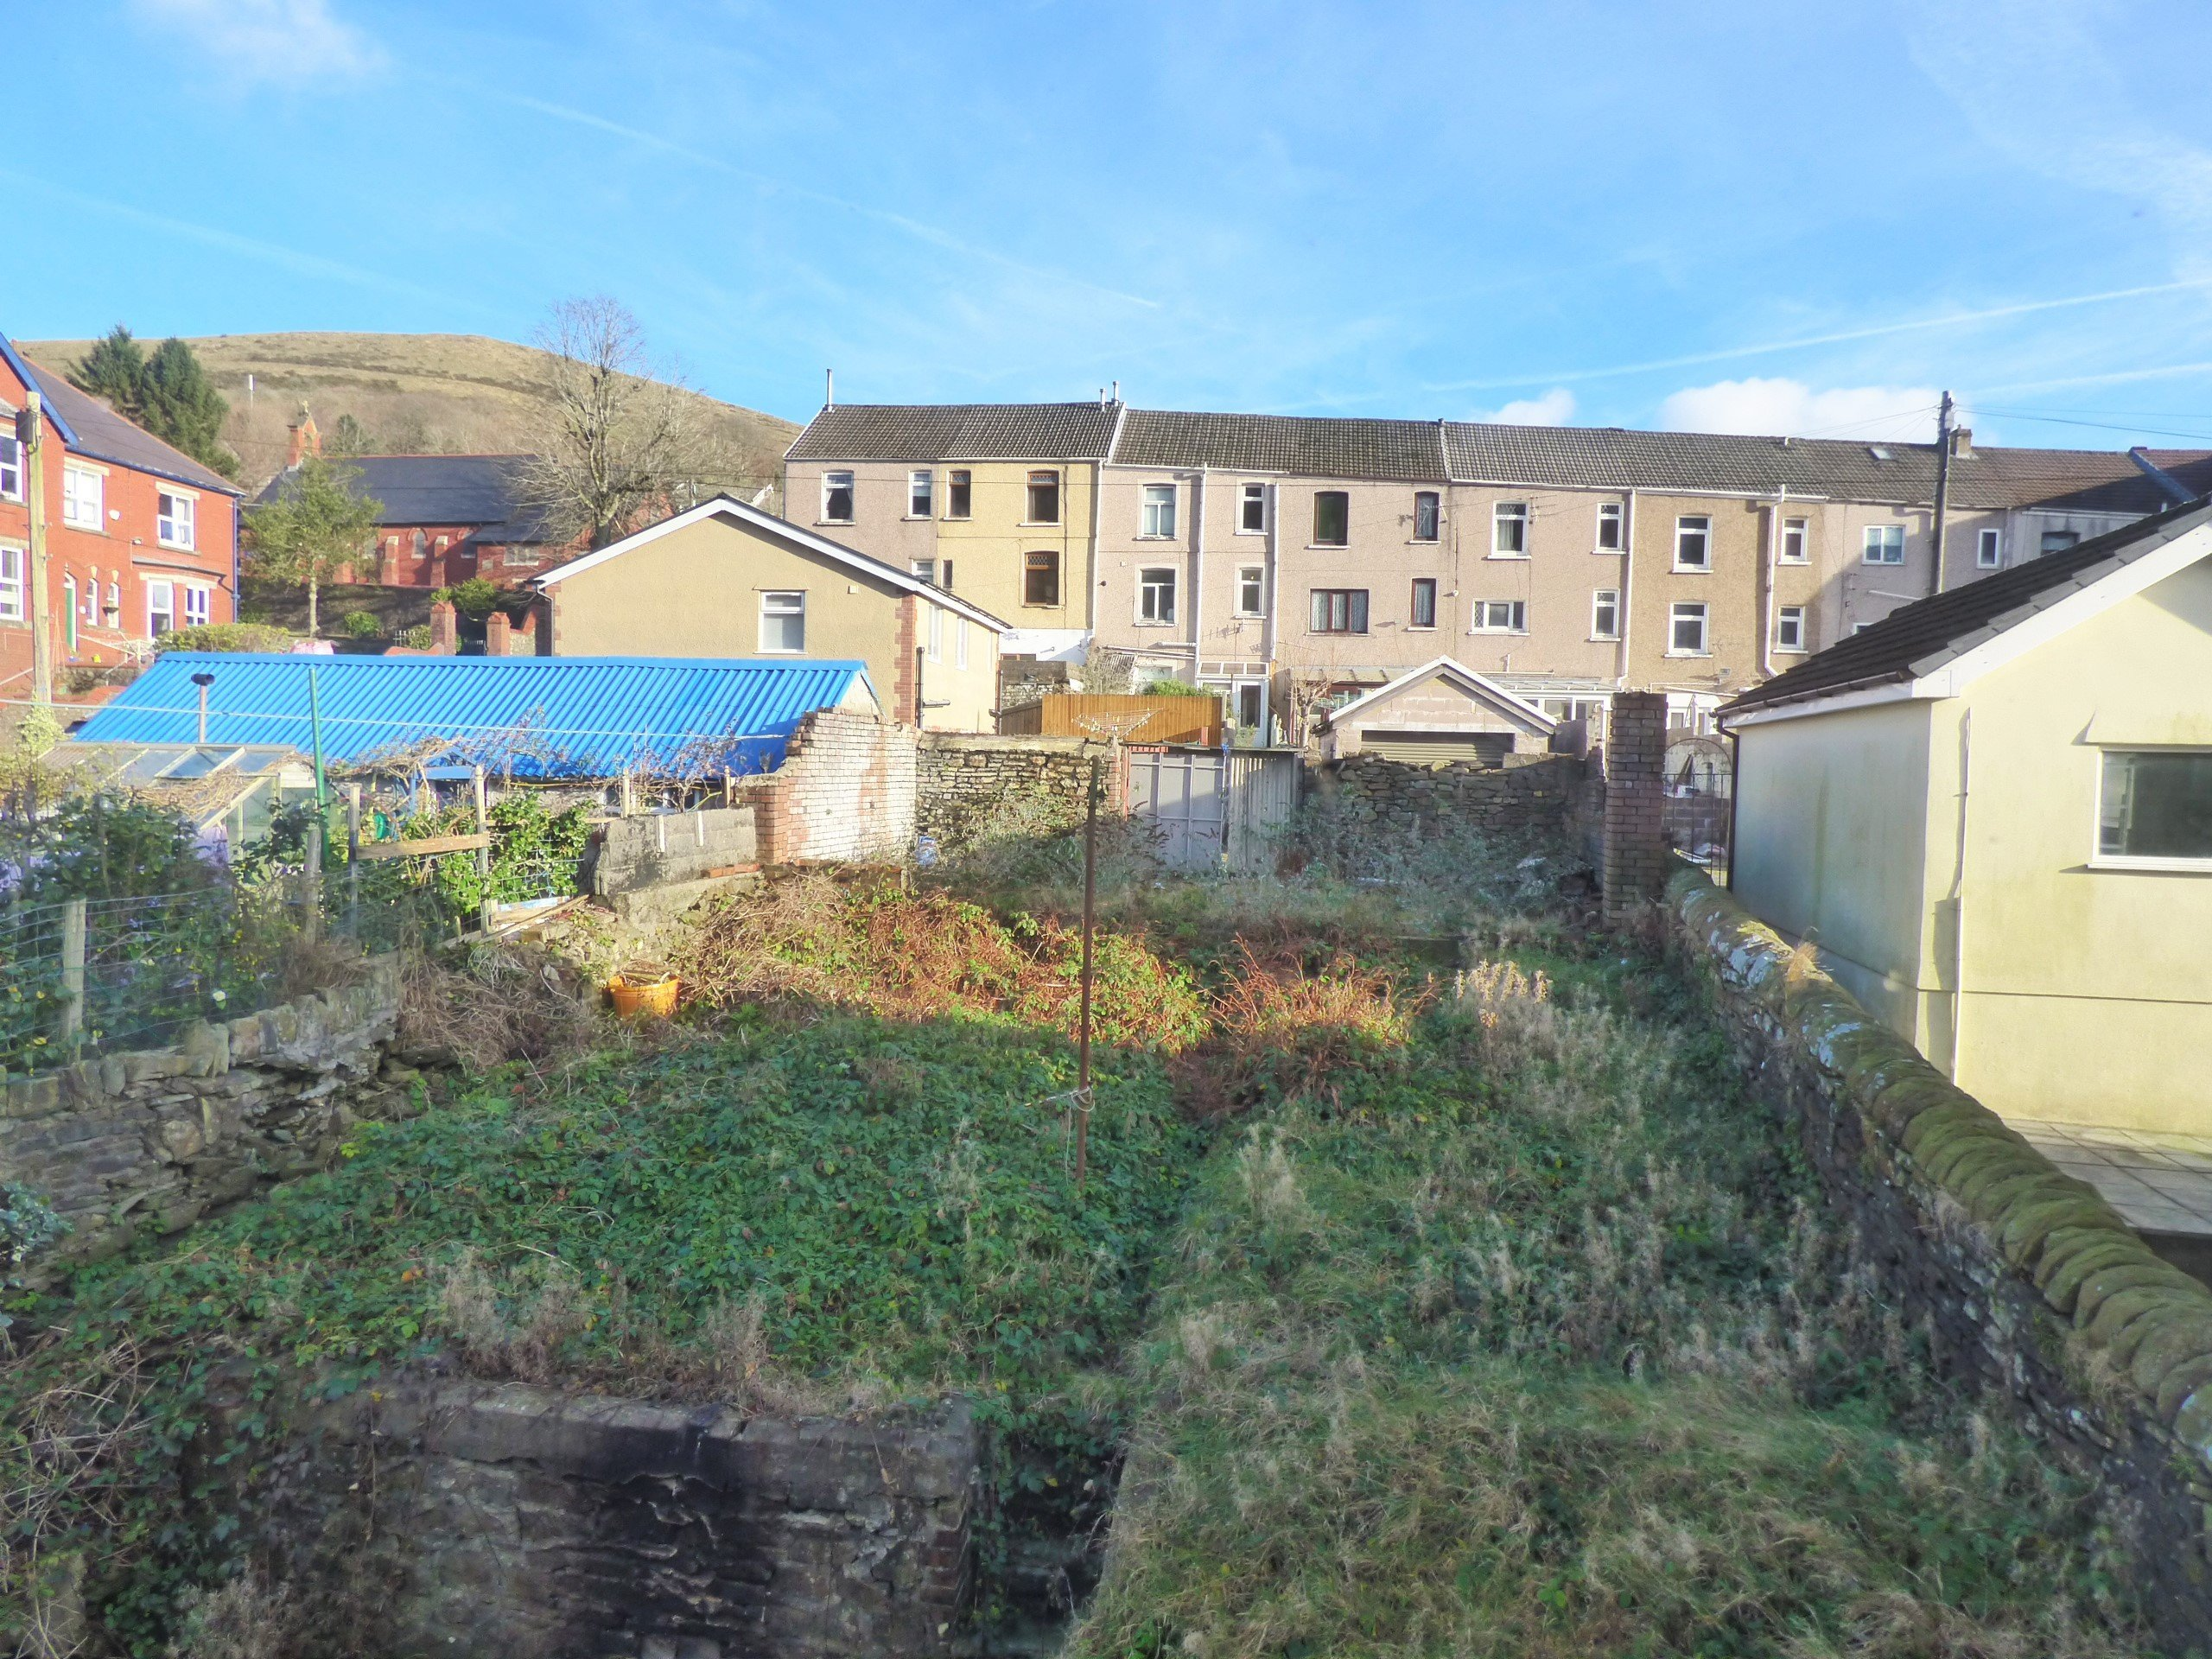 Wisemove Property for sale. Tanybryn House, Pontycymmer. Garden